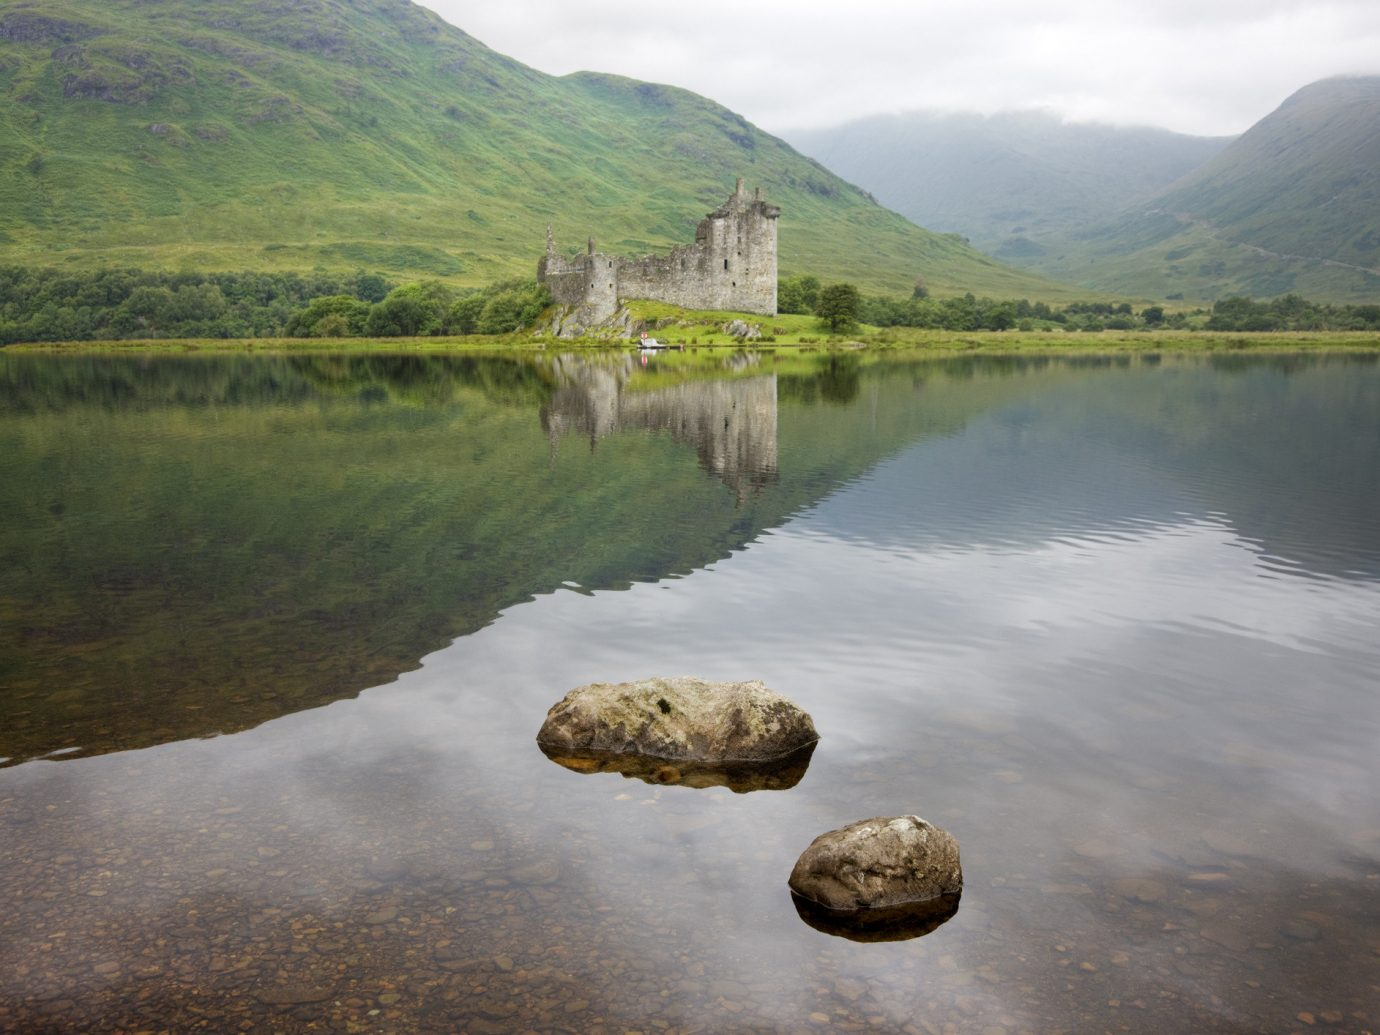 Landmarks Offbeat mountain water sky reflection grass Nature outdoor Lake loch mountainous landforms highland reservoir tarn lake district River morning bank landscape hill tree mount scenery water resources rock cloud fell surrounded